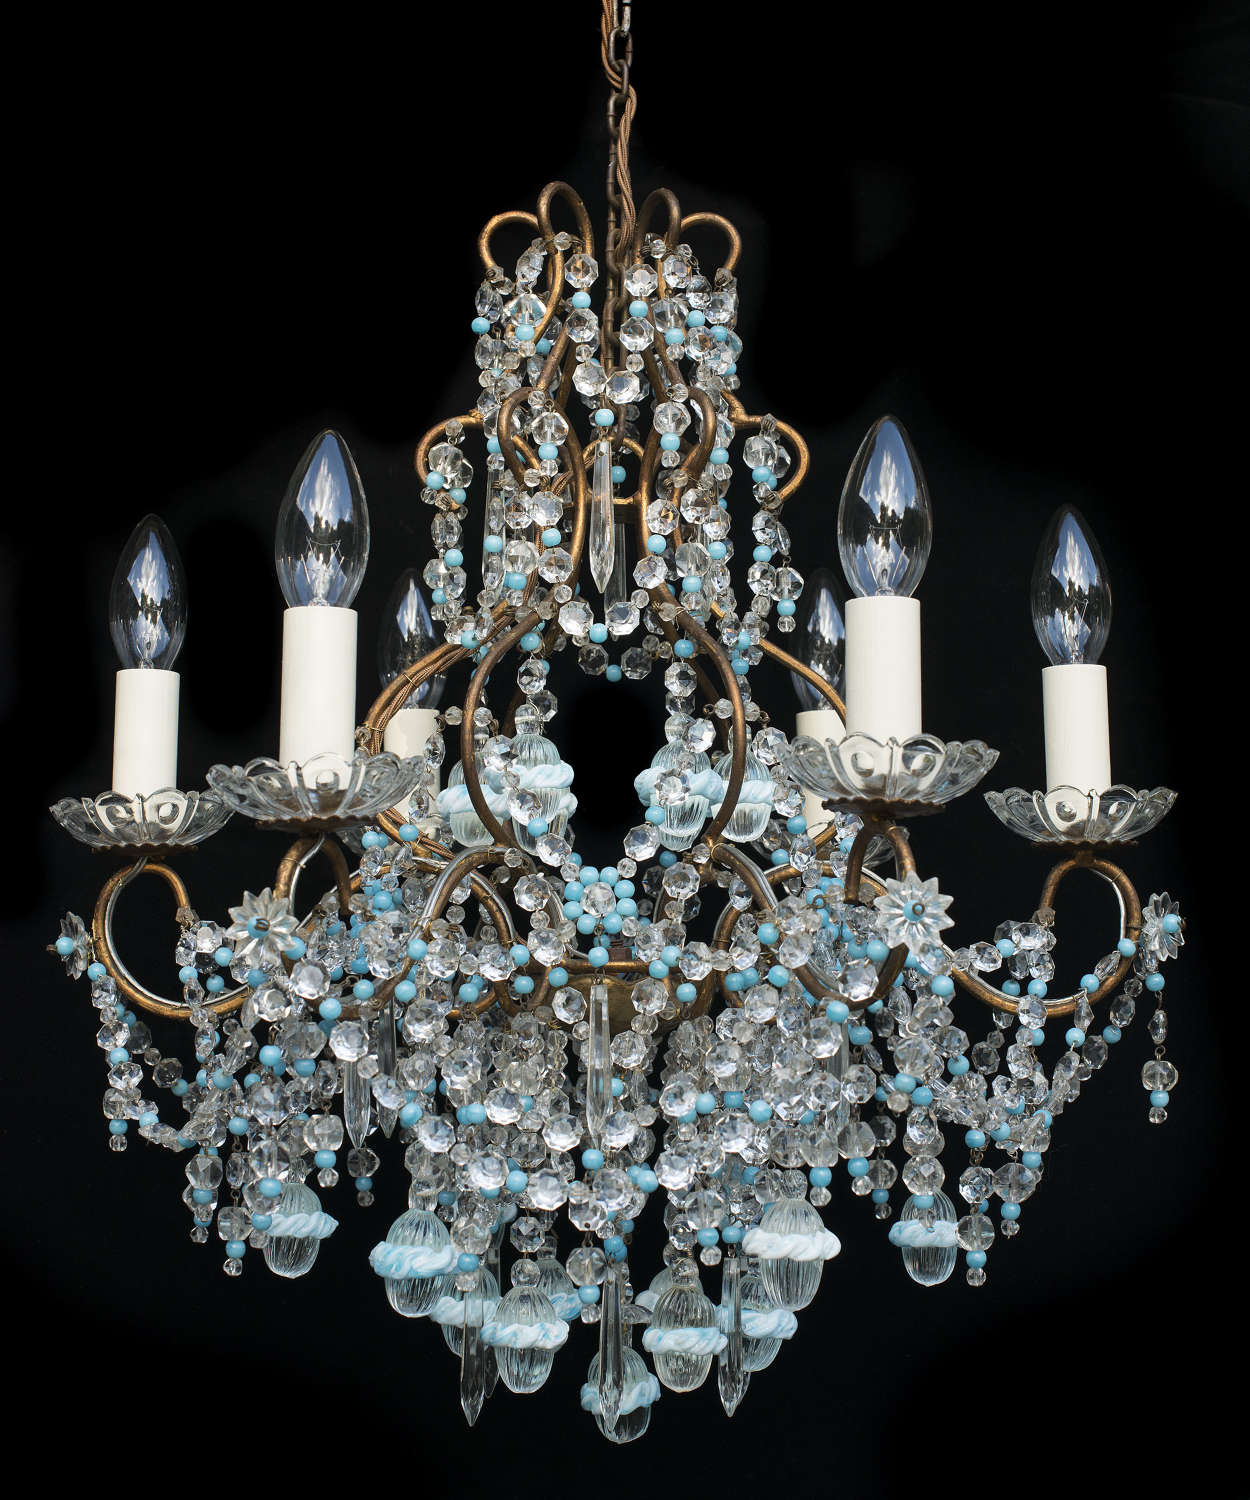 6 light Italian Vintage Florentine Chandelier with Murano glass drops